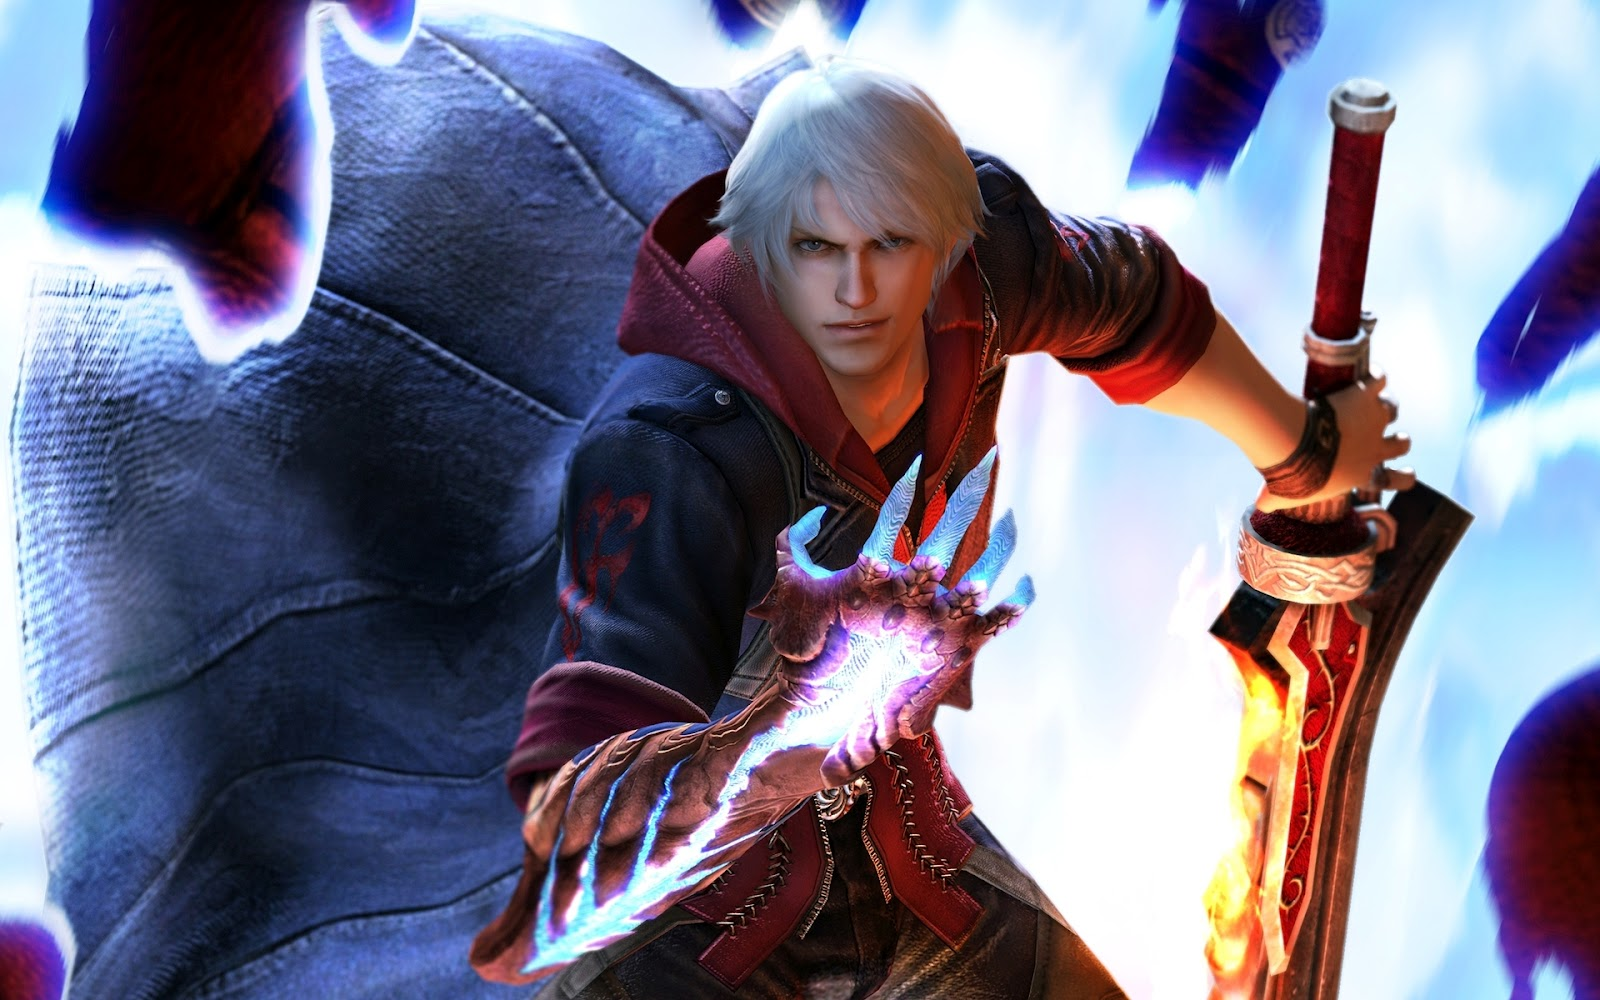 Devil may cry 4 fondos de pantalla hd wallpapers hd - Devil may cry hd pics ...